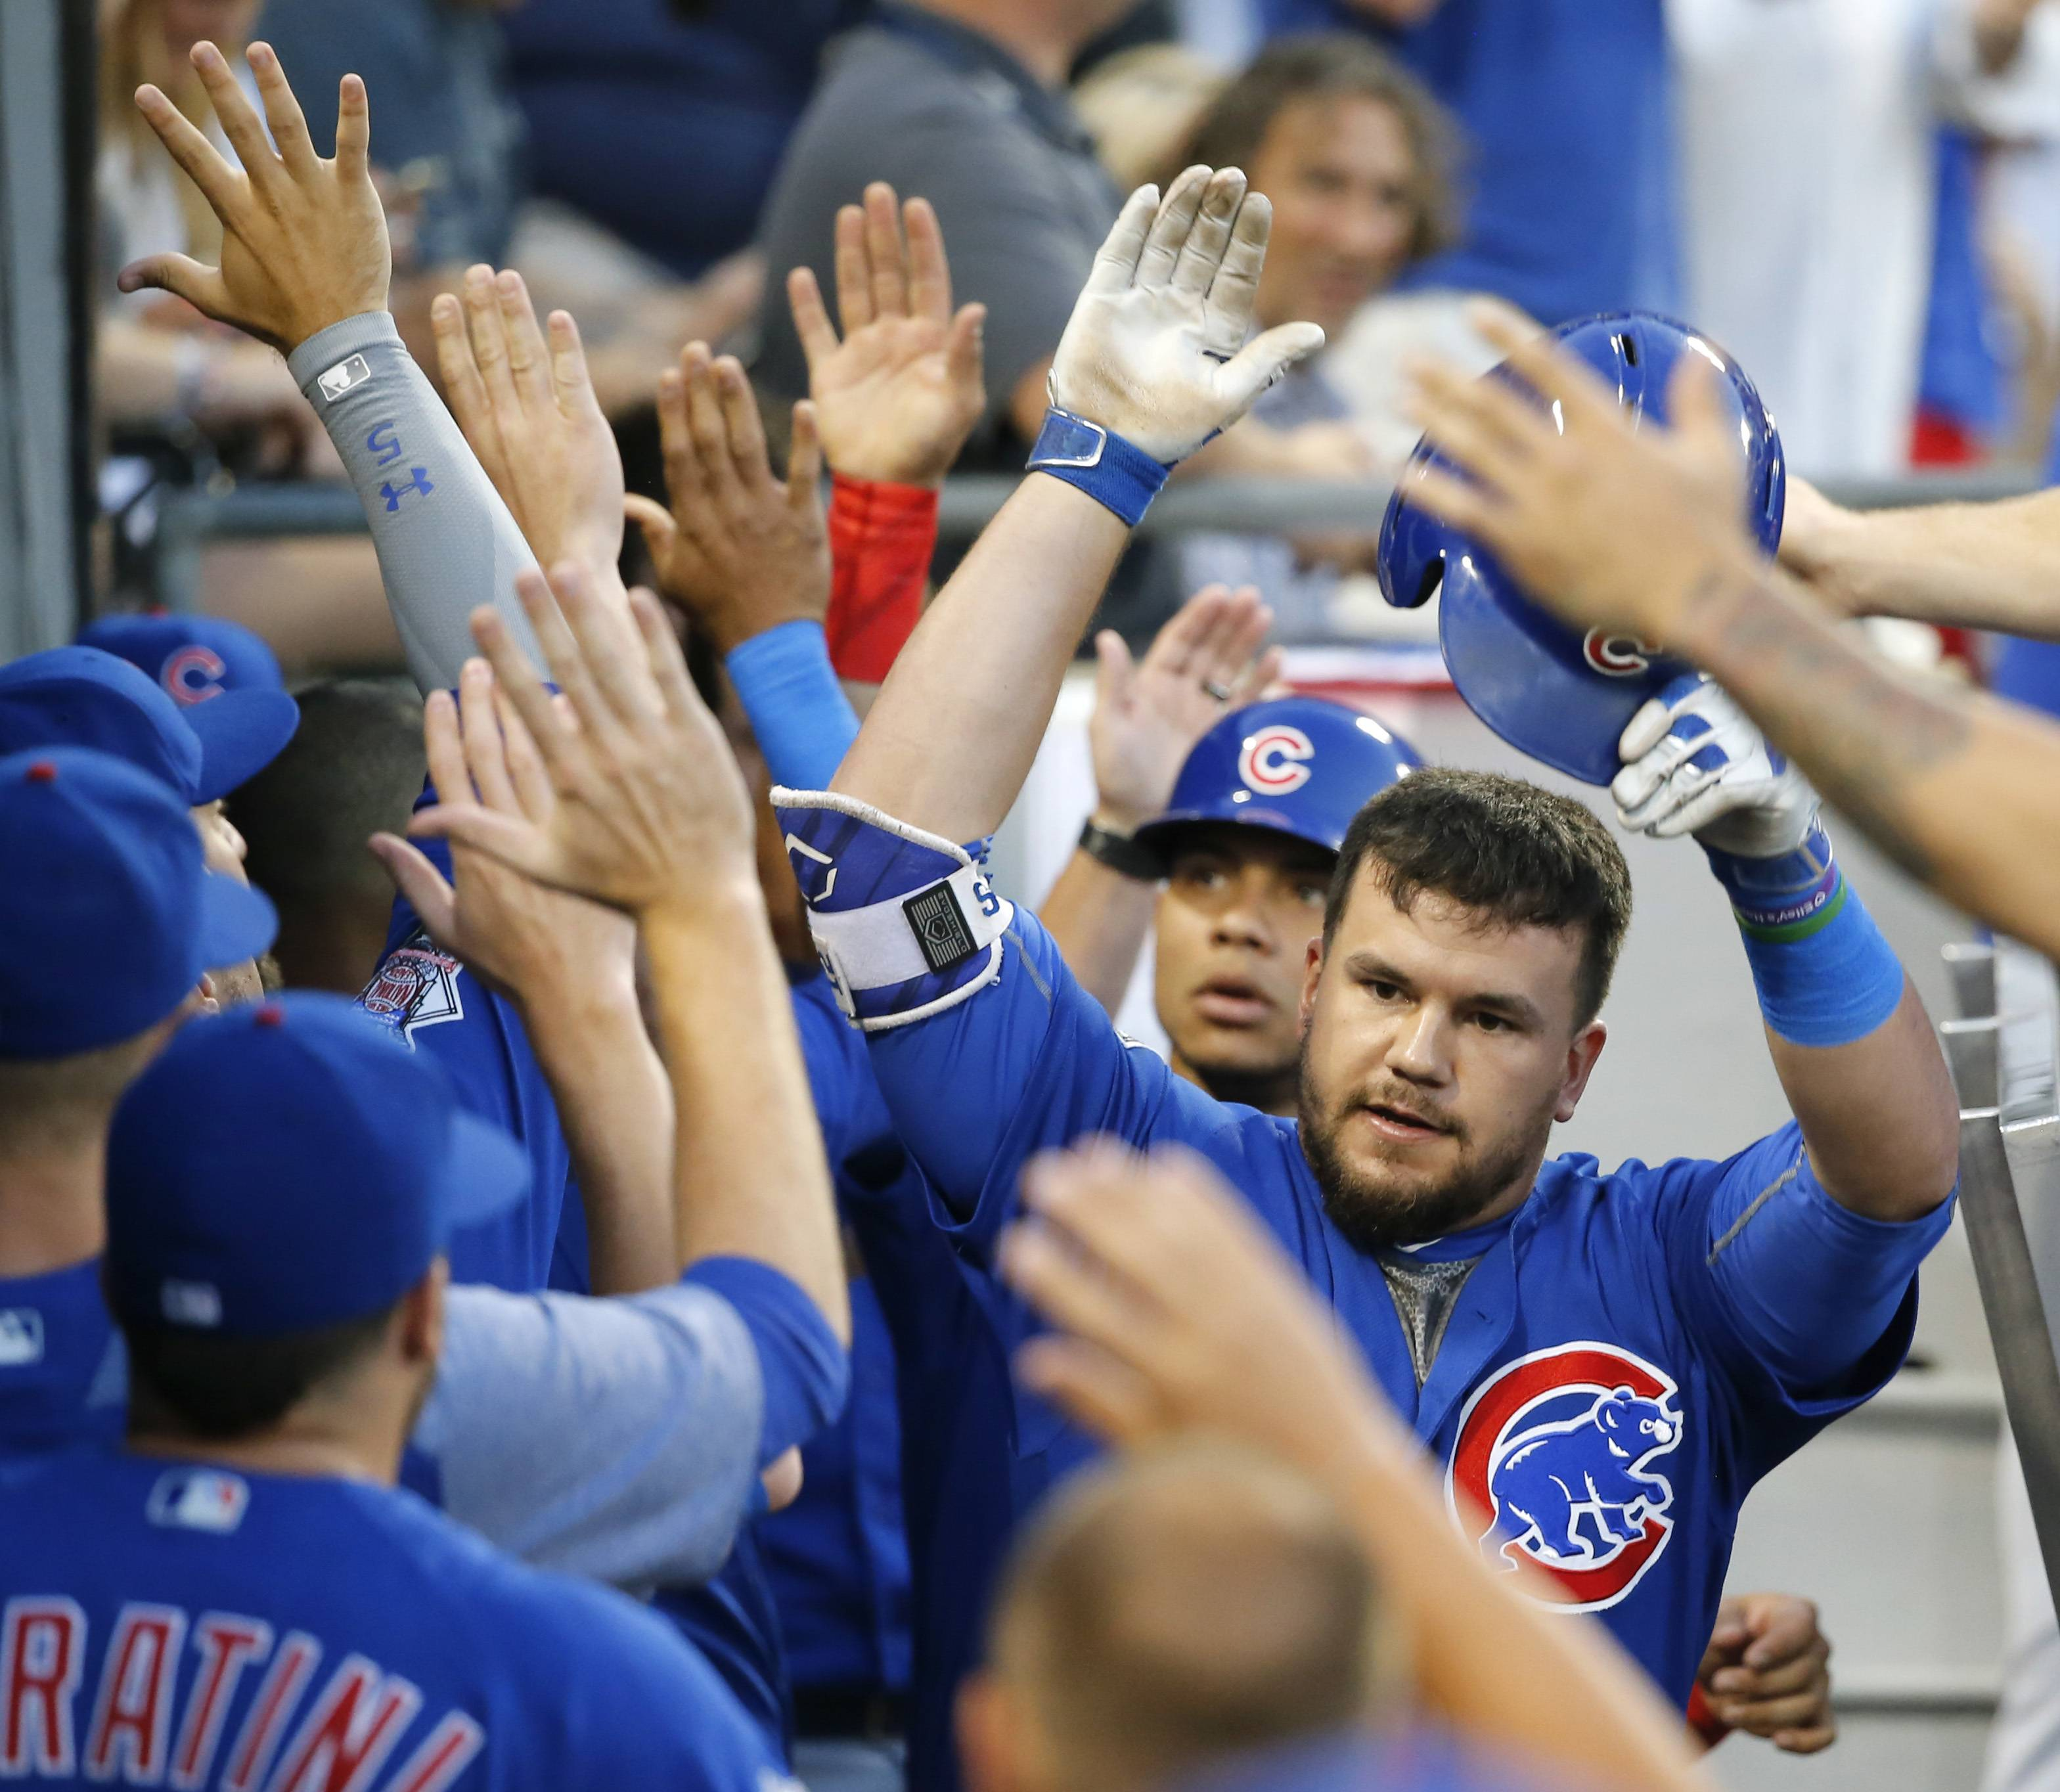 Cubs' Kyle Schwarber, right, and Willson Contreras, second from right, celebrate in the dugout after they scored on Schwarber's 2-run home run off Chicago White Sox starting pitcher Mike Pelfrey during the fourth inning Thursday, July 27, in Chicago. Things seem to be coming together at the right time for the Cubs as they head to Milwaukee this weekend for a three-game series with the Brewers. The Cubs beat the White Sox 6-3 Thursday night.